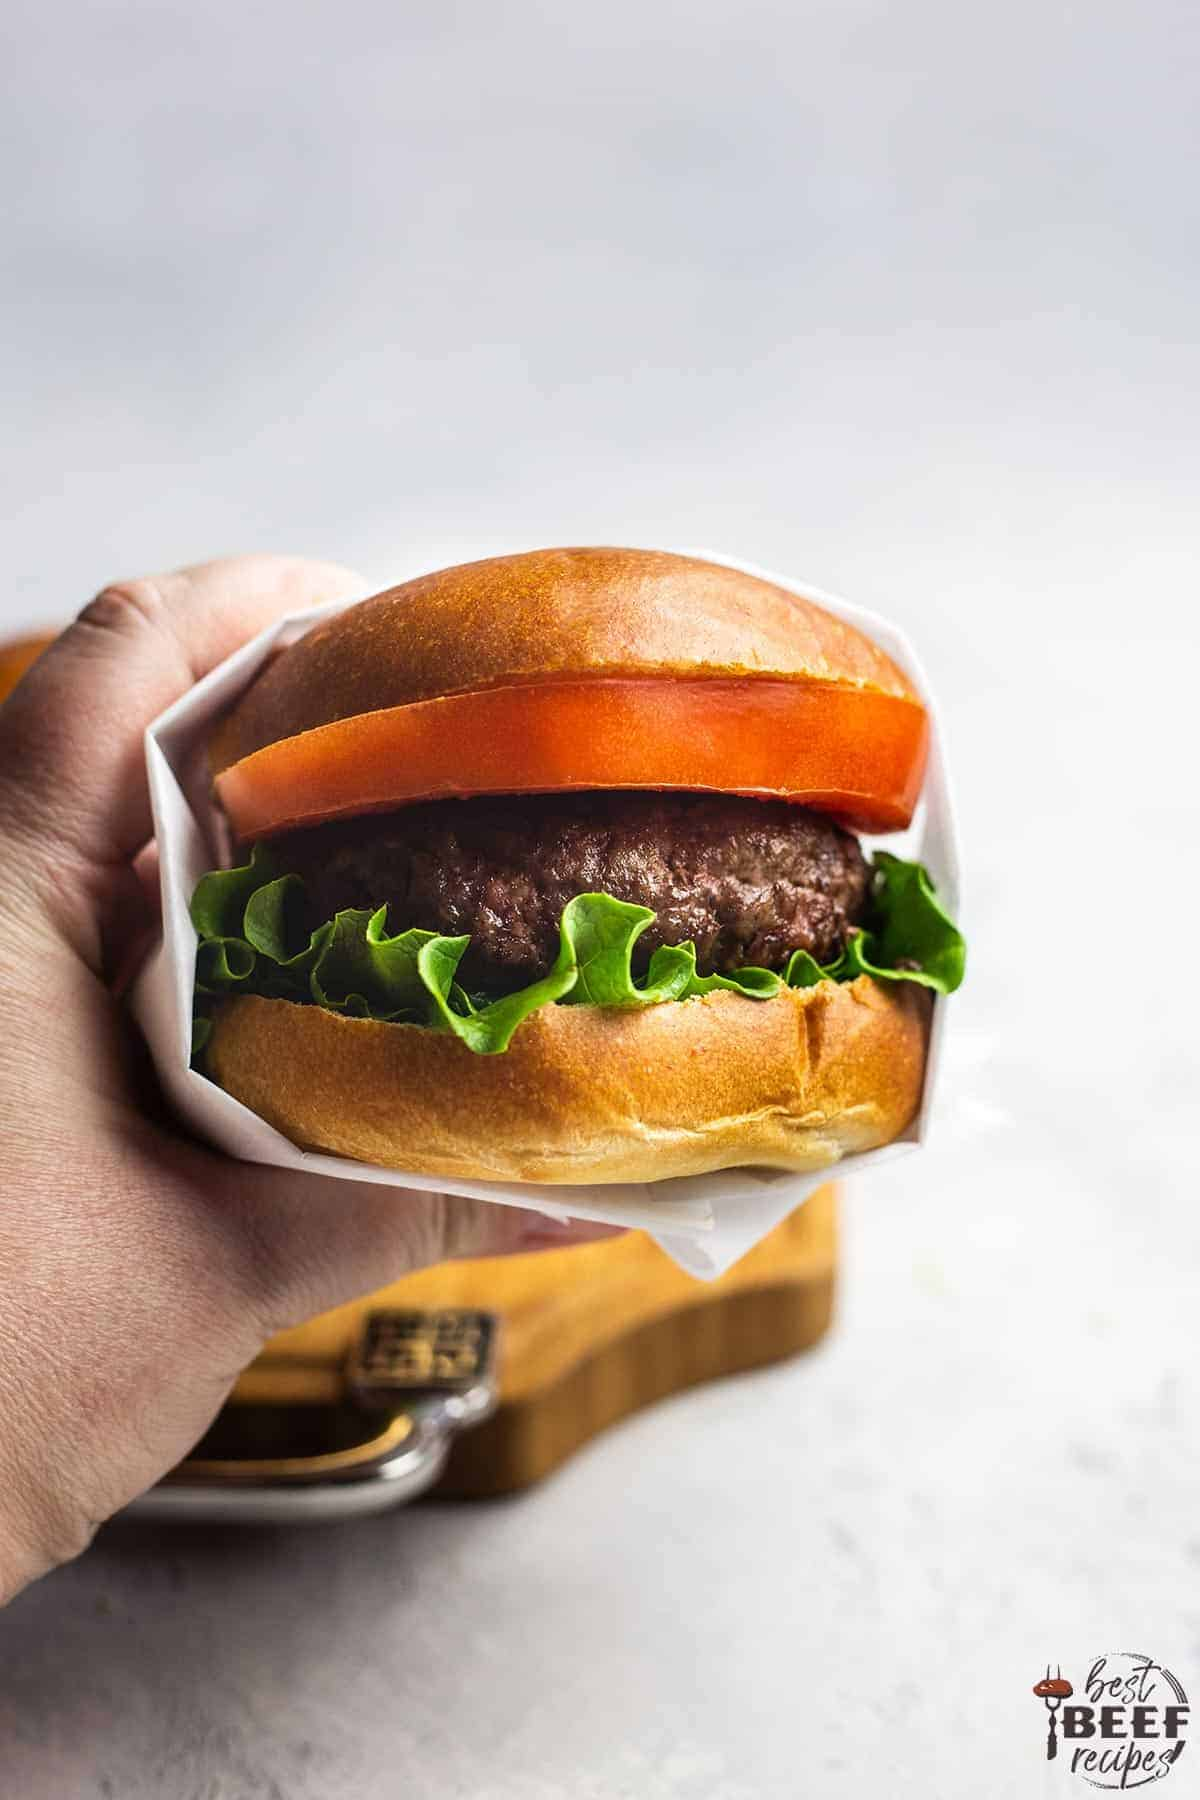 Holding up a garlic butter burger that's wrapped with white paper